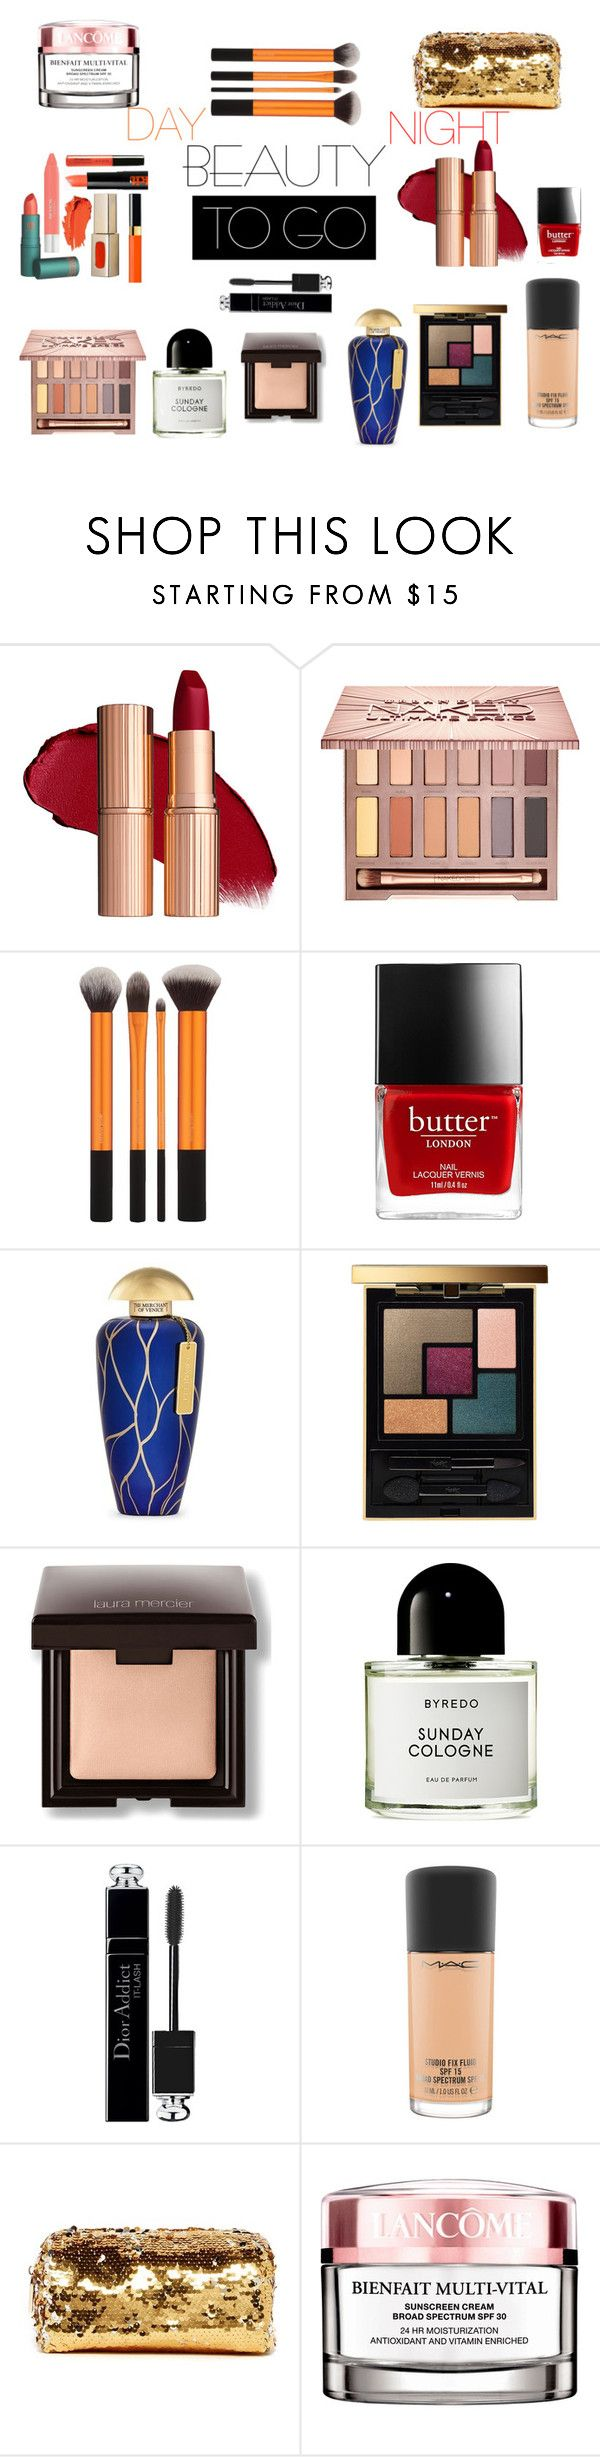 """DAY/NIGHT ON HOLYDAYS"" by susibonvi ❤ liked on Polyvore featuring beauty, Urban Decay, The Merchant Of Venice, Yves Saint Laurent, Laura Mercier, Byredo, Christian Dior, MAC Cosmetics, Deux Lux and Lancôme"